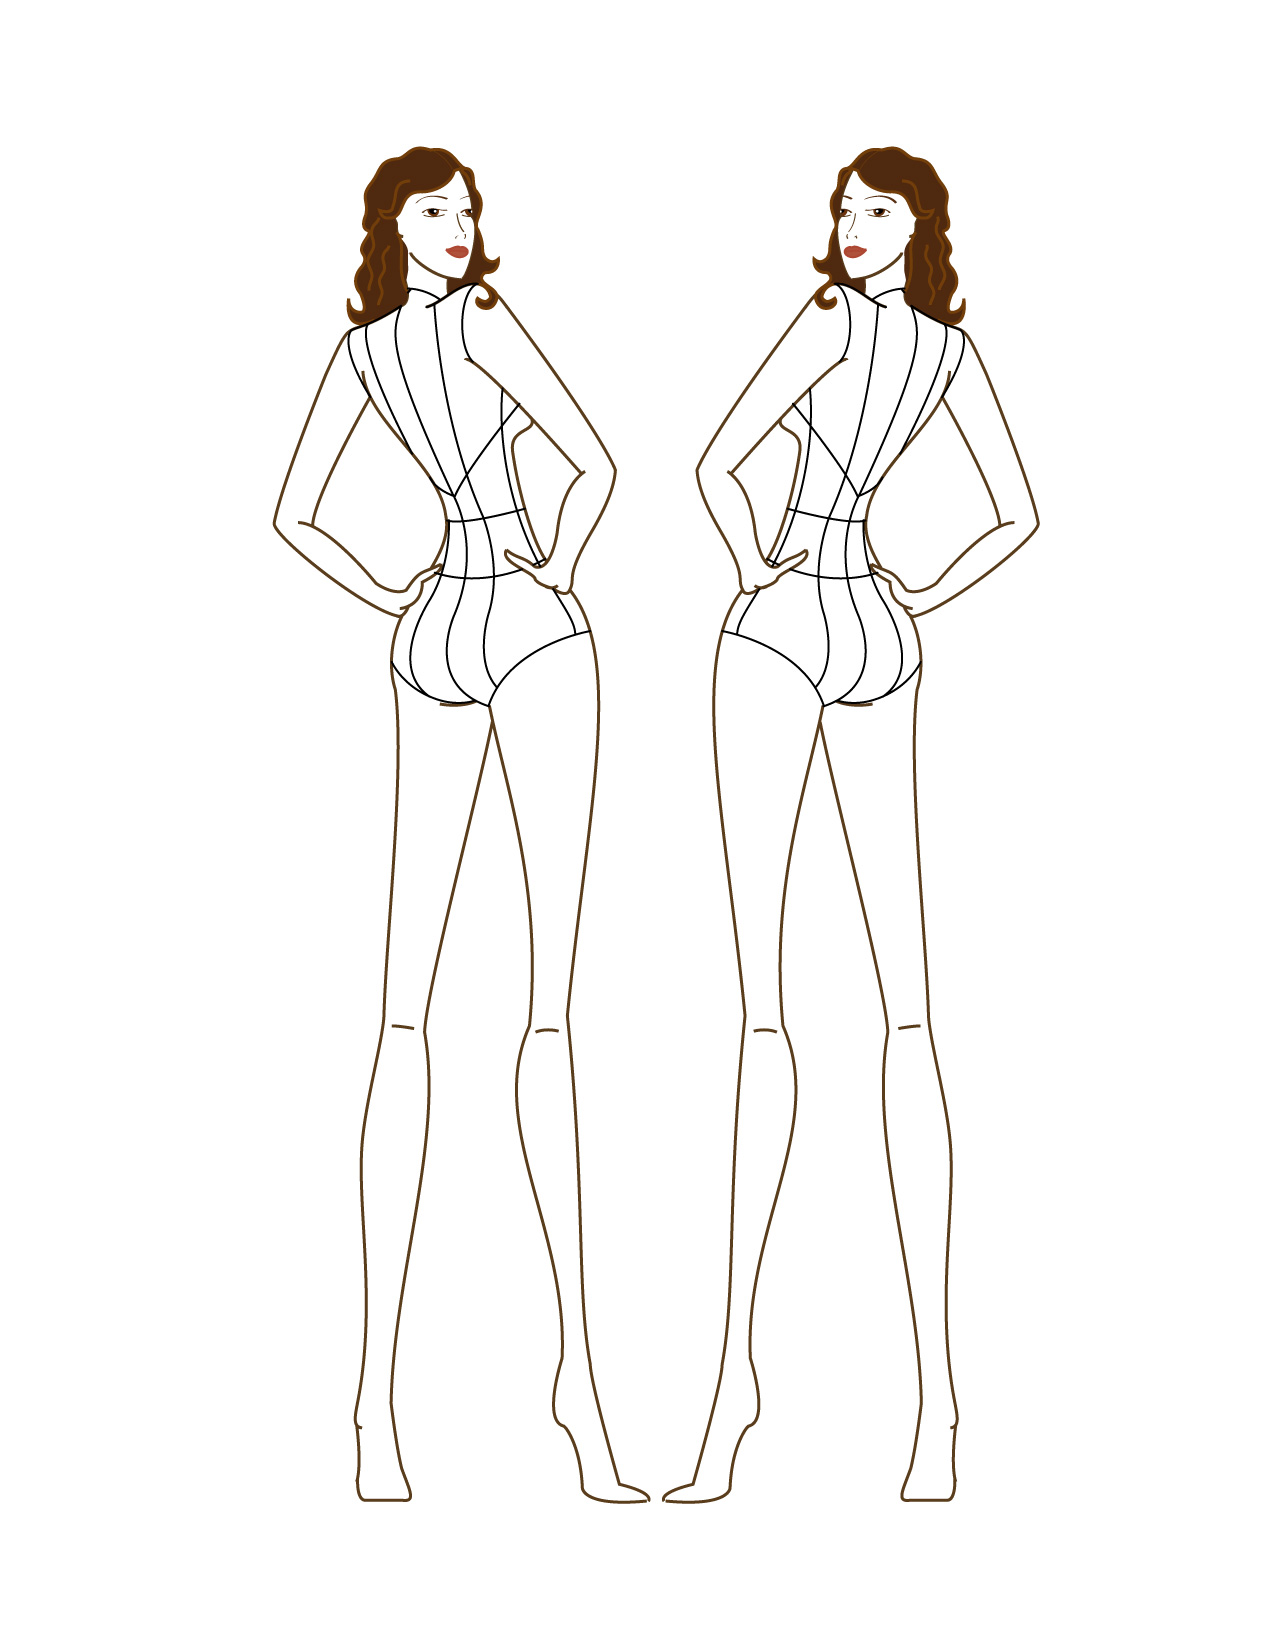 How to draw figures for fashion design 10